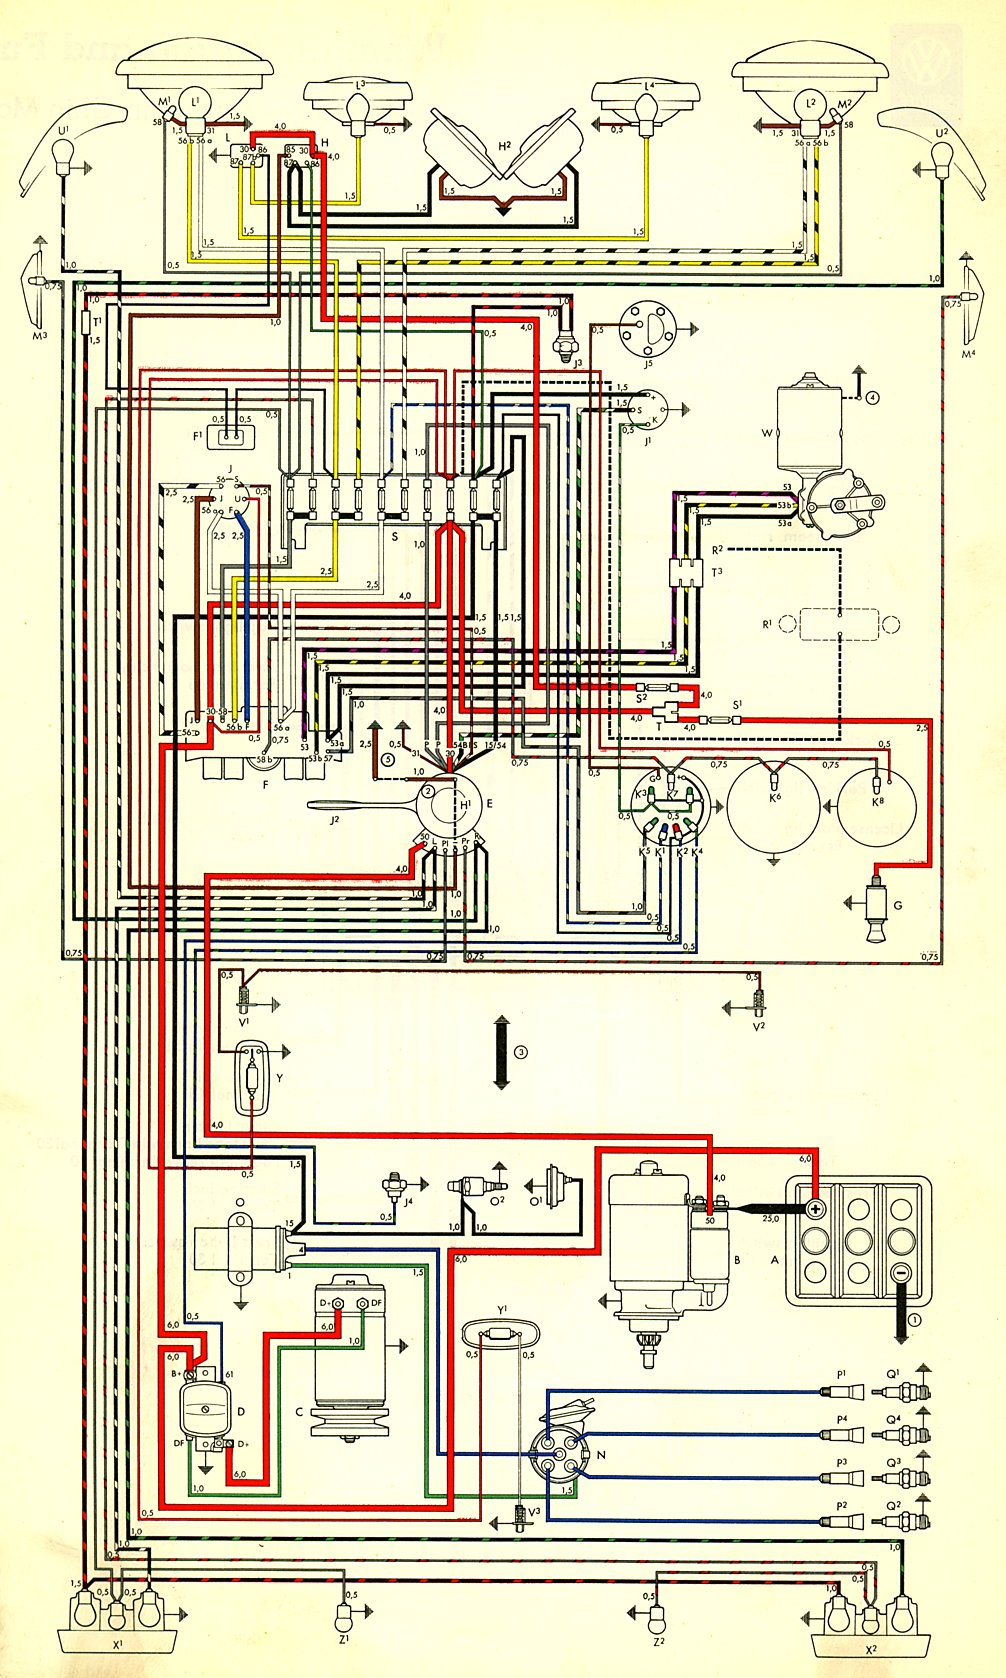 wiring diagram 5s1f 65 pontiac wiring diagram